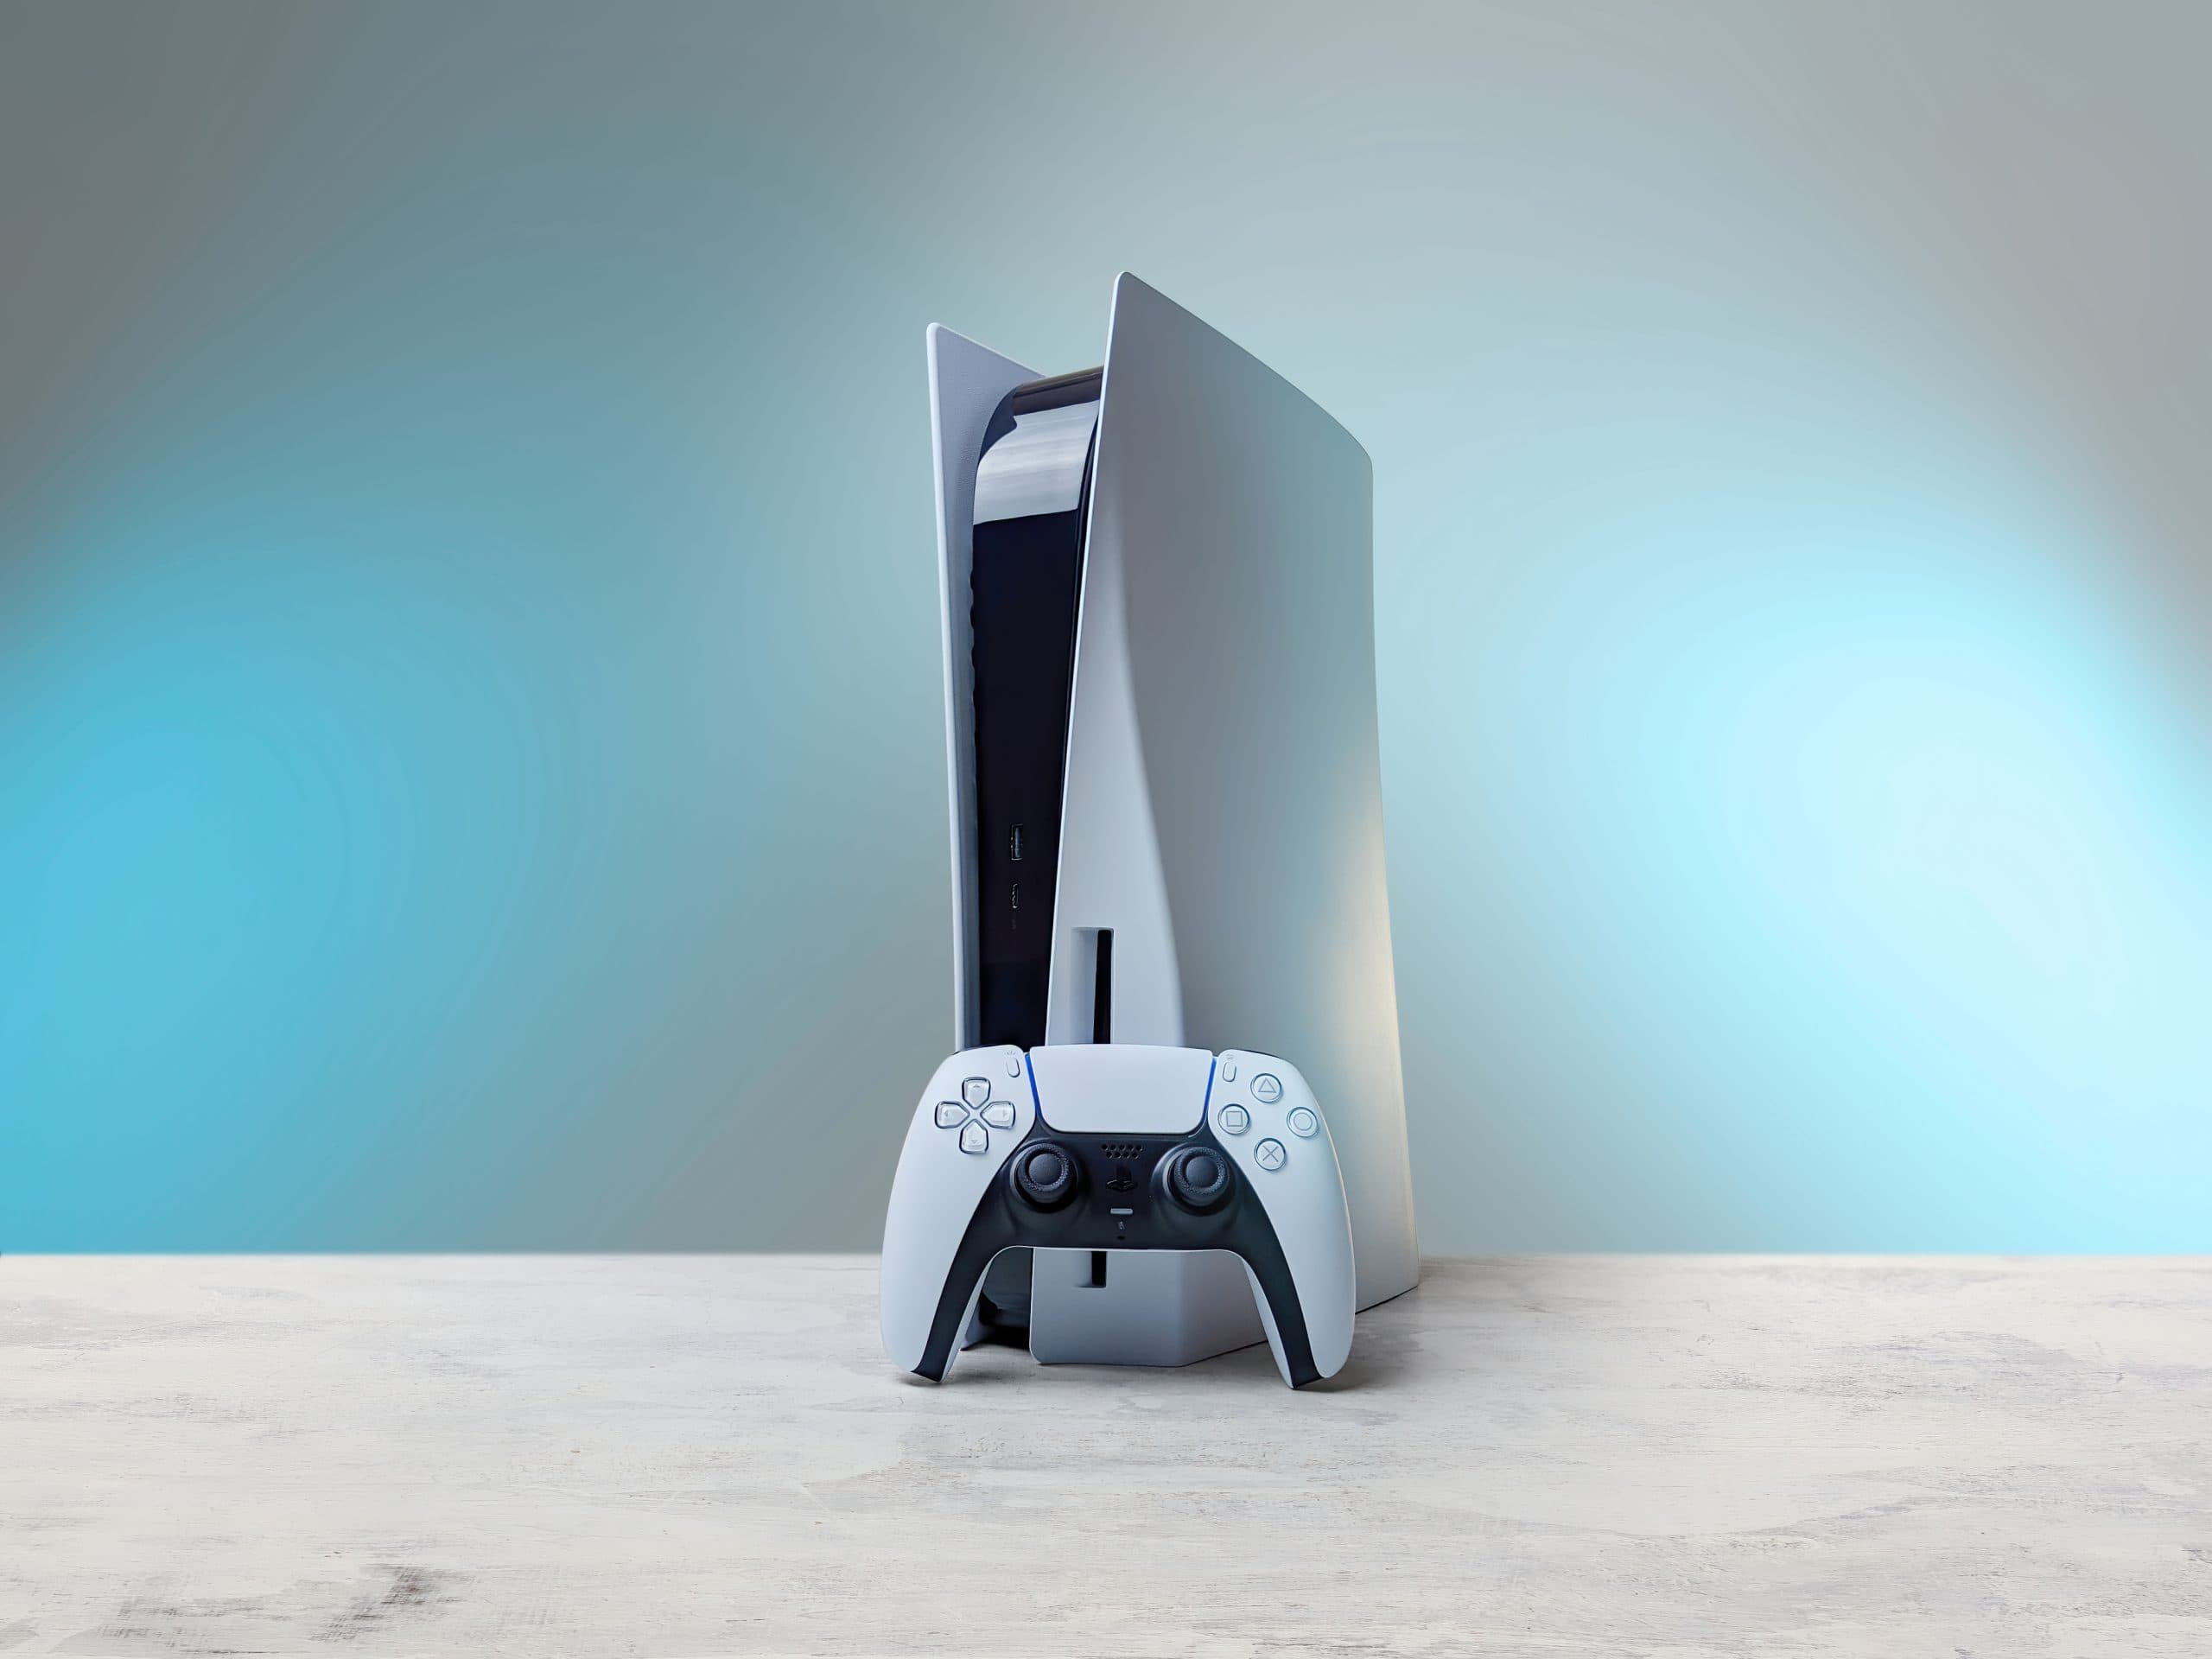 Playstation 5: Shipping delay due to Ethereum mining?